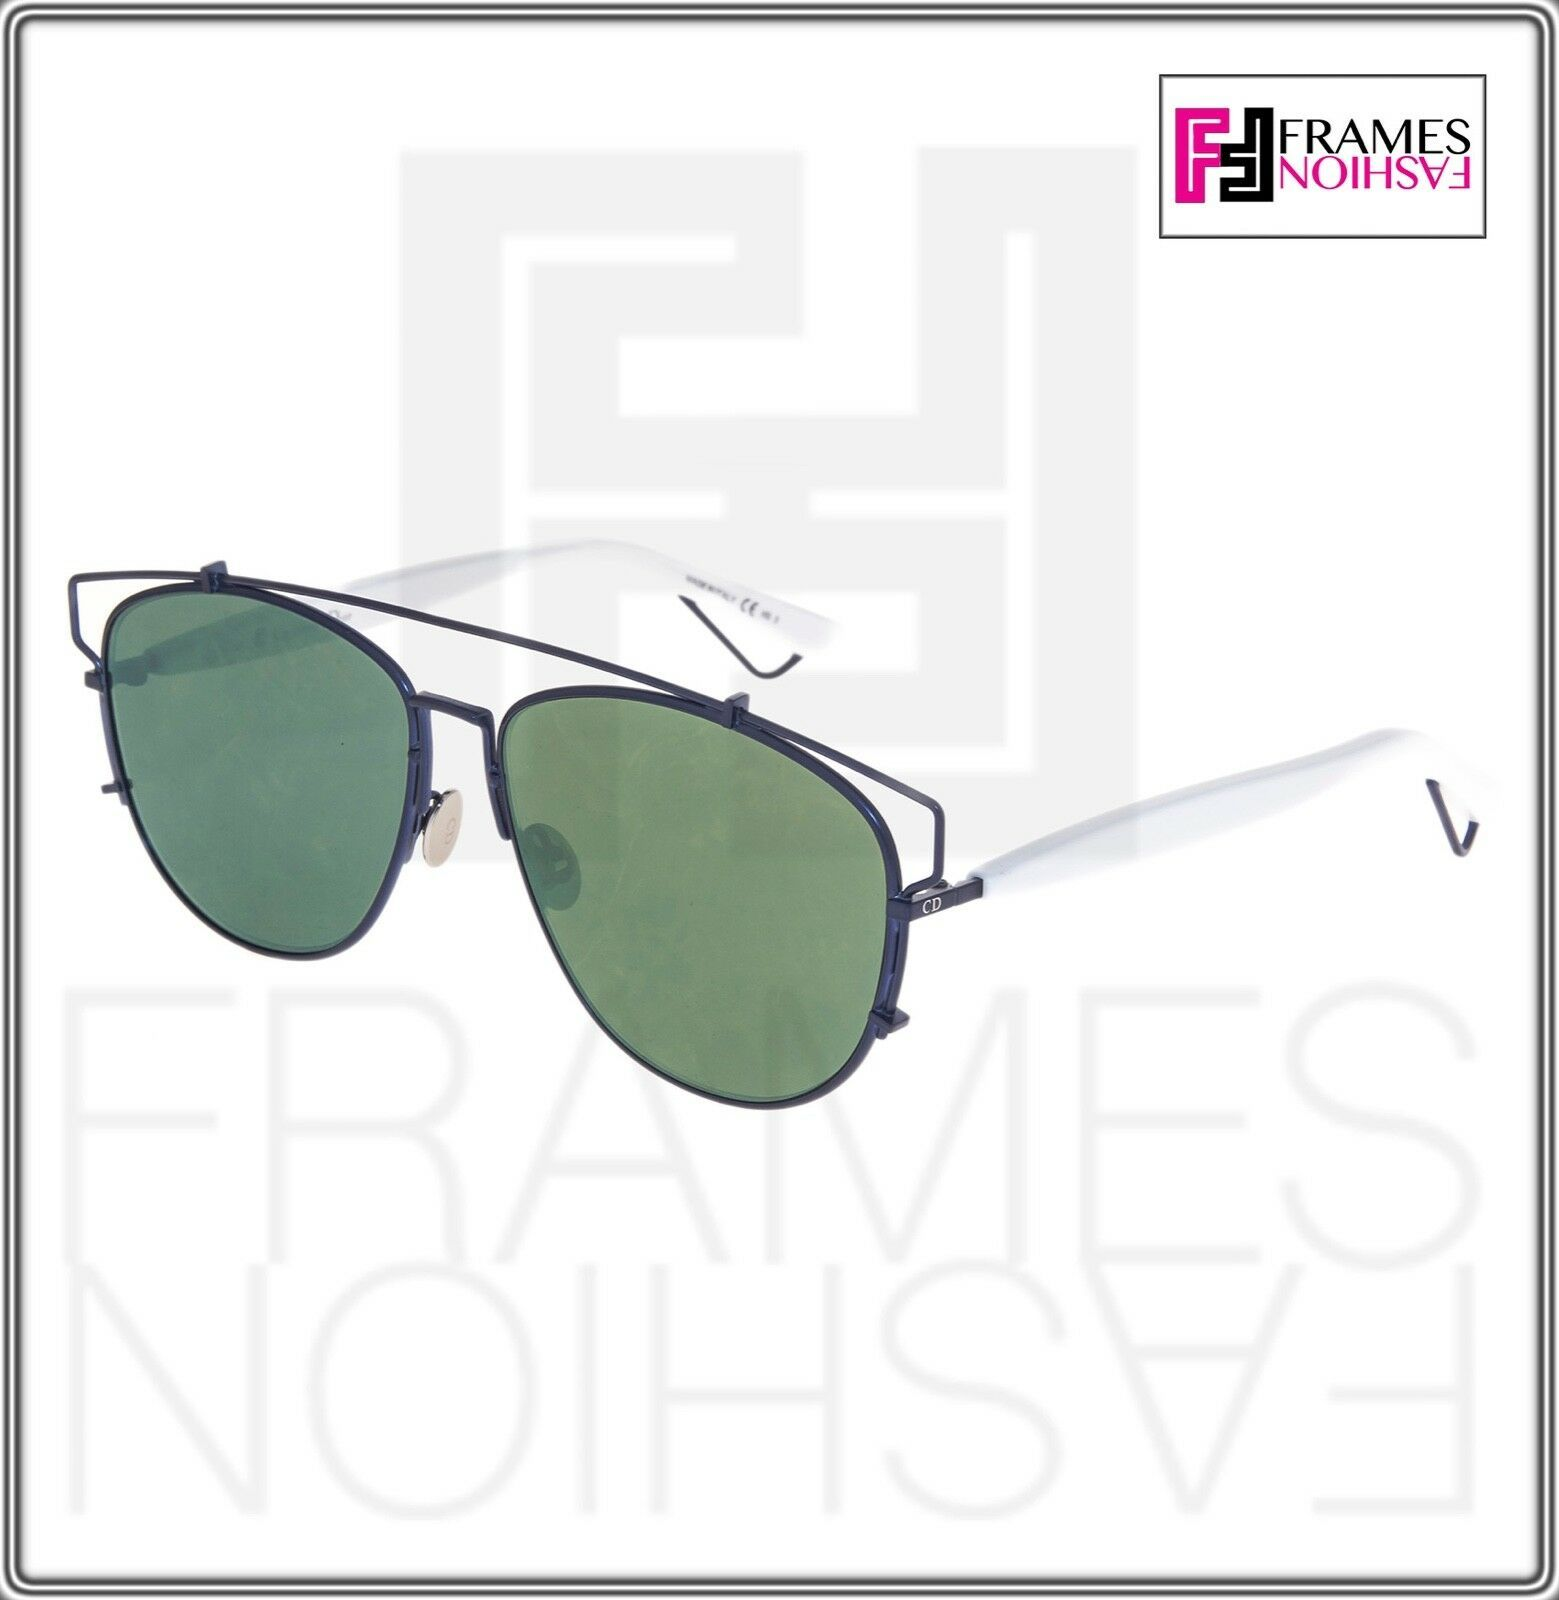 CHRISTIAN DIOR TECHNOLOGIC White Navy Blue Green Flat Mirrored Sunglasses Unisex